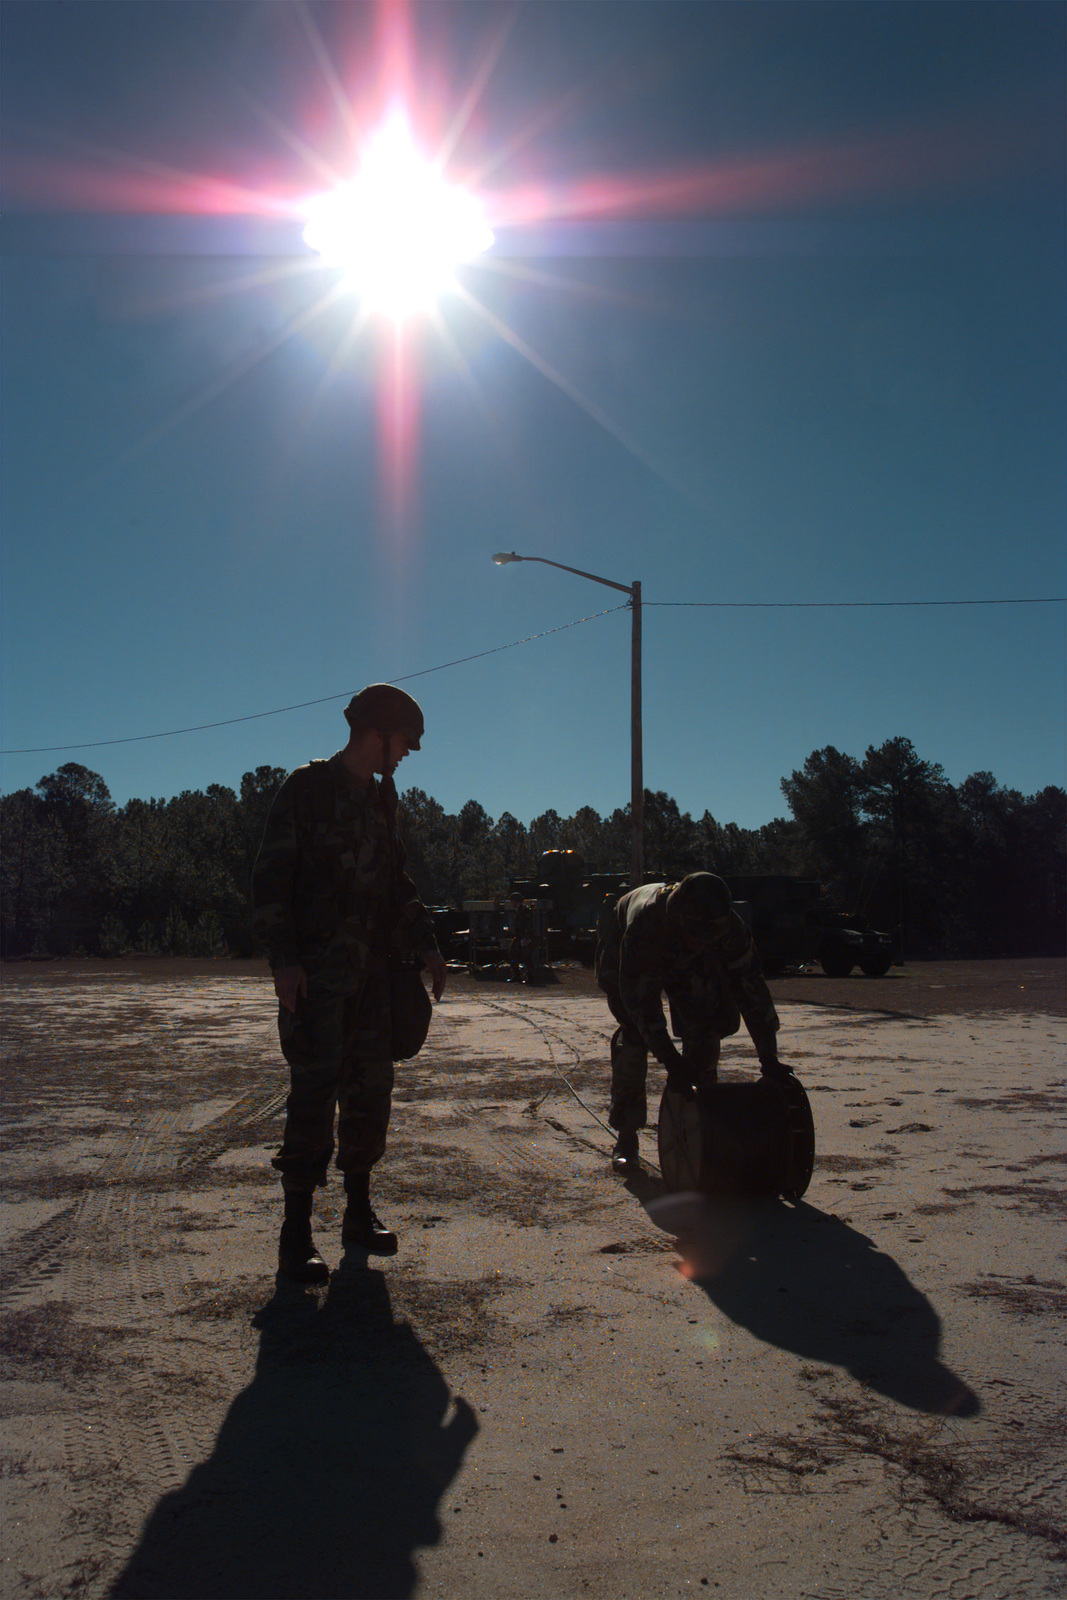 """SPECIALIST (SPC) Imdacha and Sergeant Renfro of the 67th Signal (Sig) Battalion (Bn), 93rd Sig Brigade (Bde), - 31L """"Cable Dogs"""" are running CX11230 (quarter mile coax cable) from a communication shelter to another for early morning network installation"""